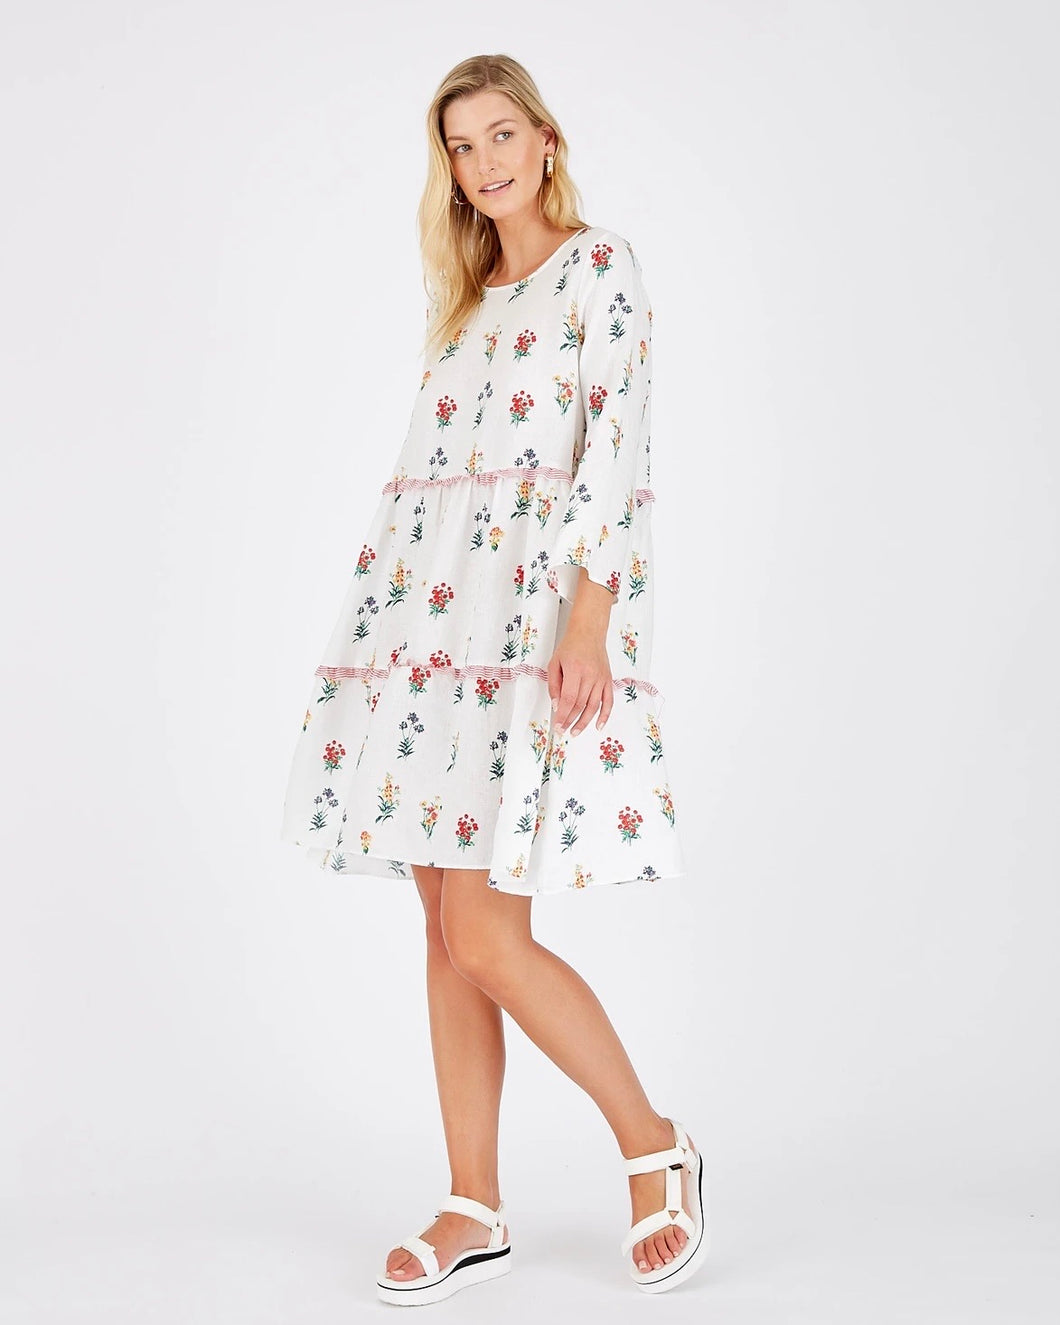 White Floral Toffee Dress by Alessandra